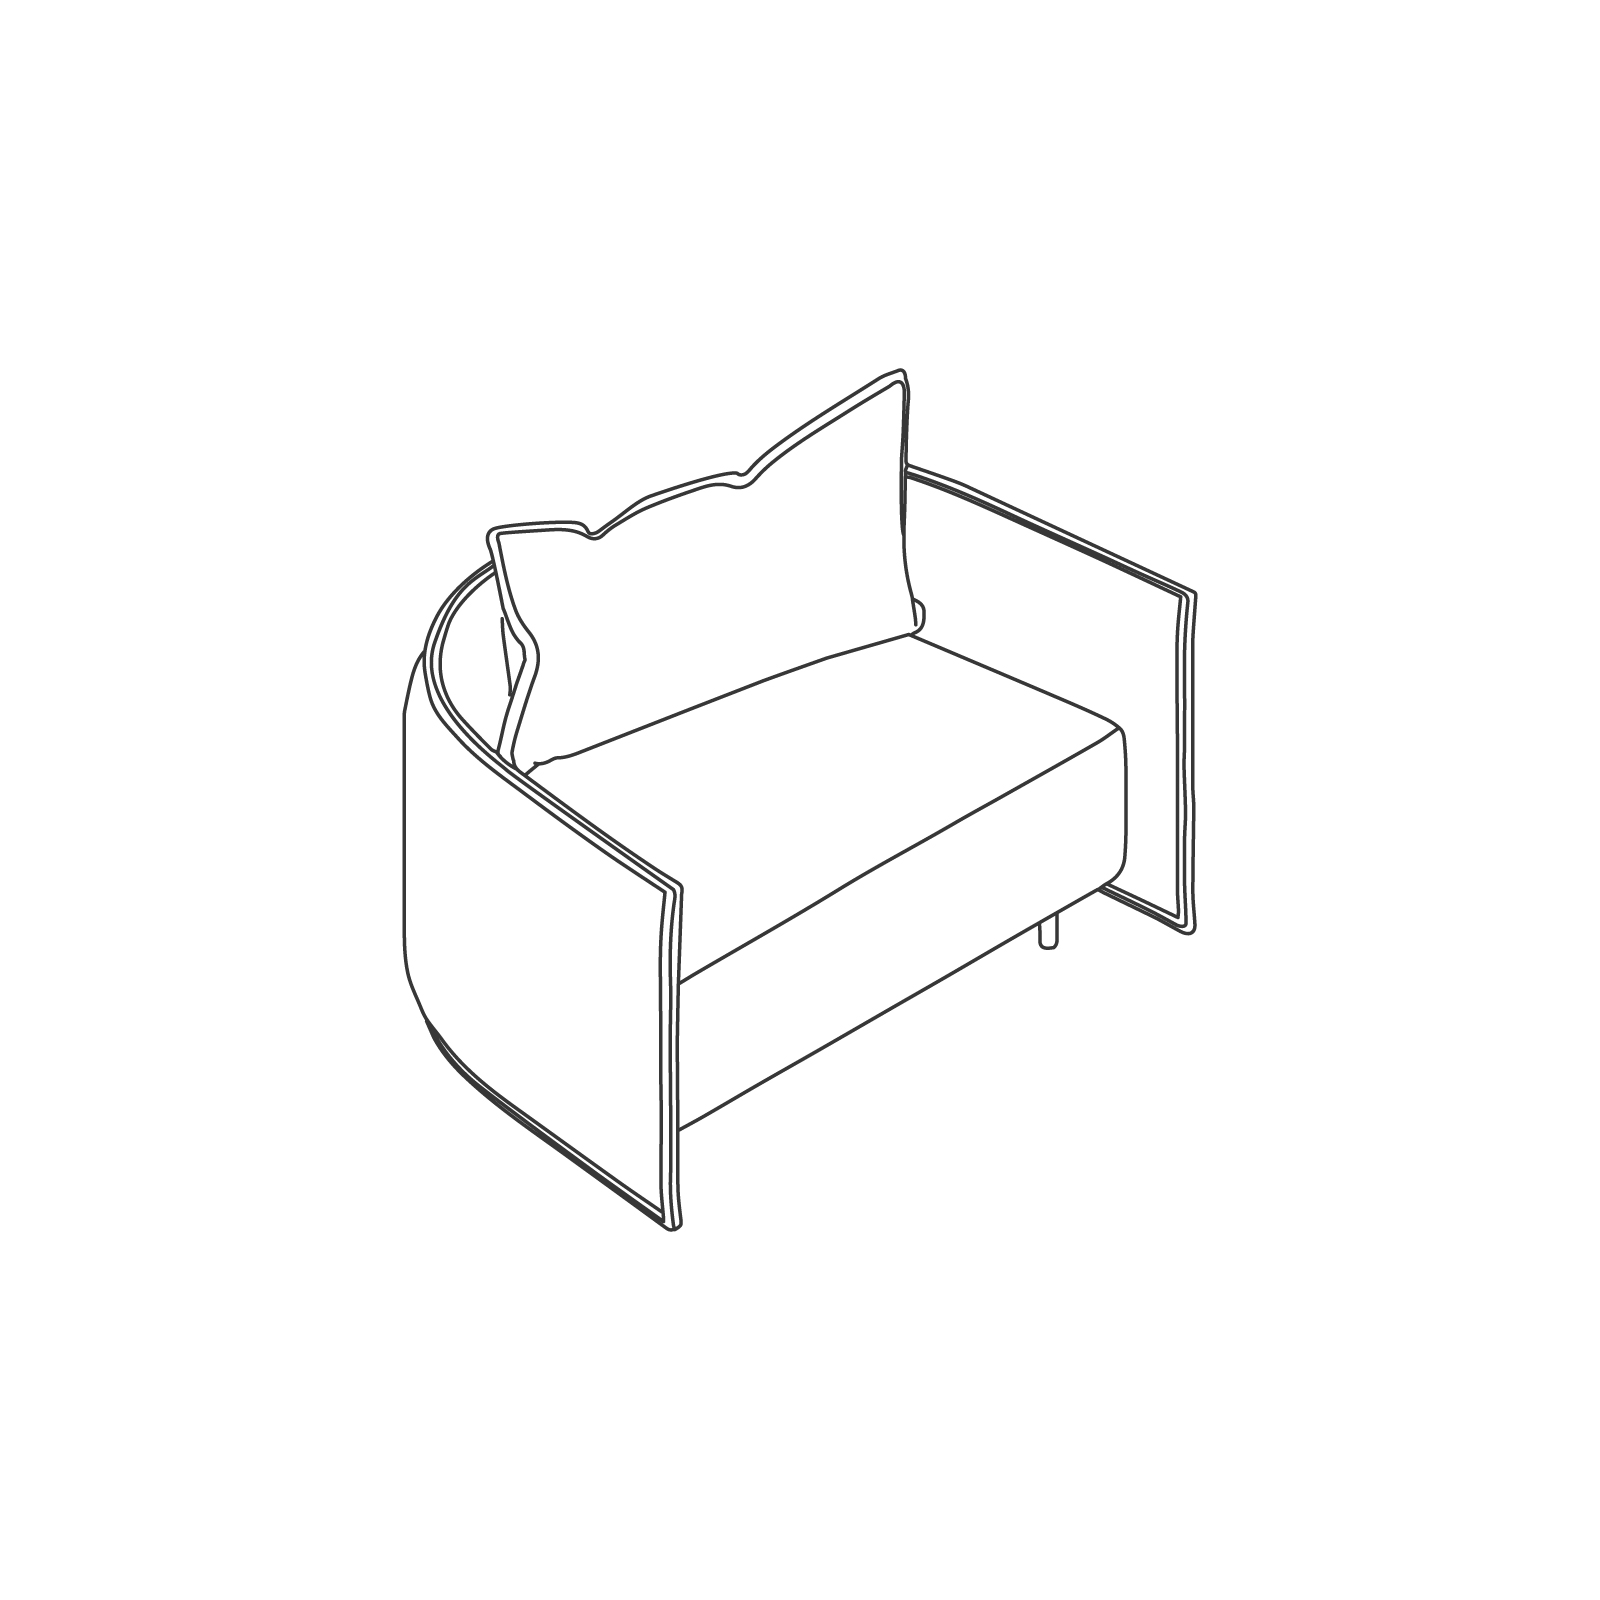 A line drawing of Cloud Plain Sofa–Low Back–1.5 Seat.